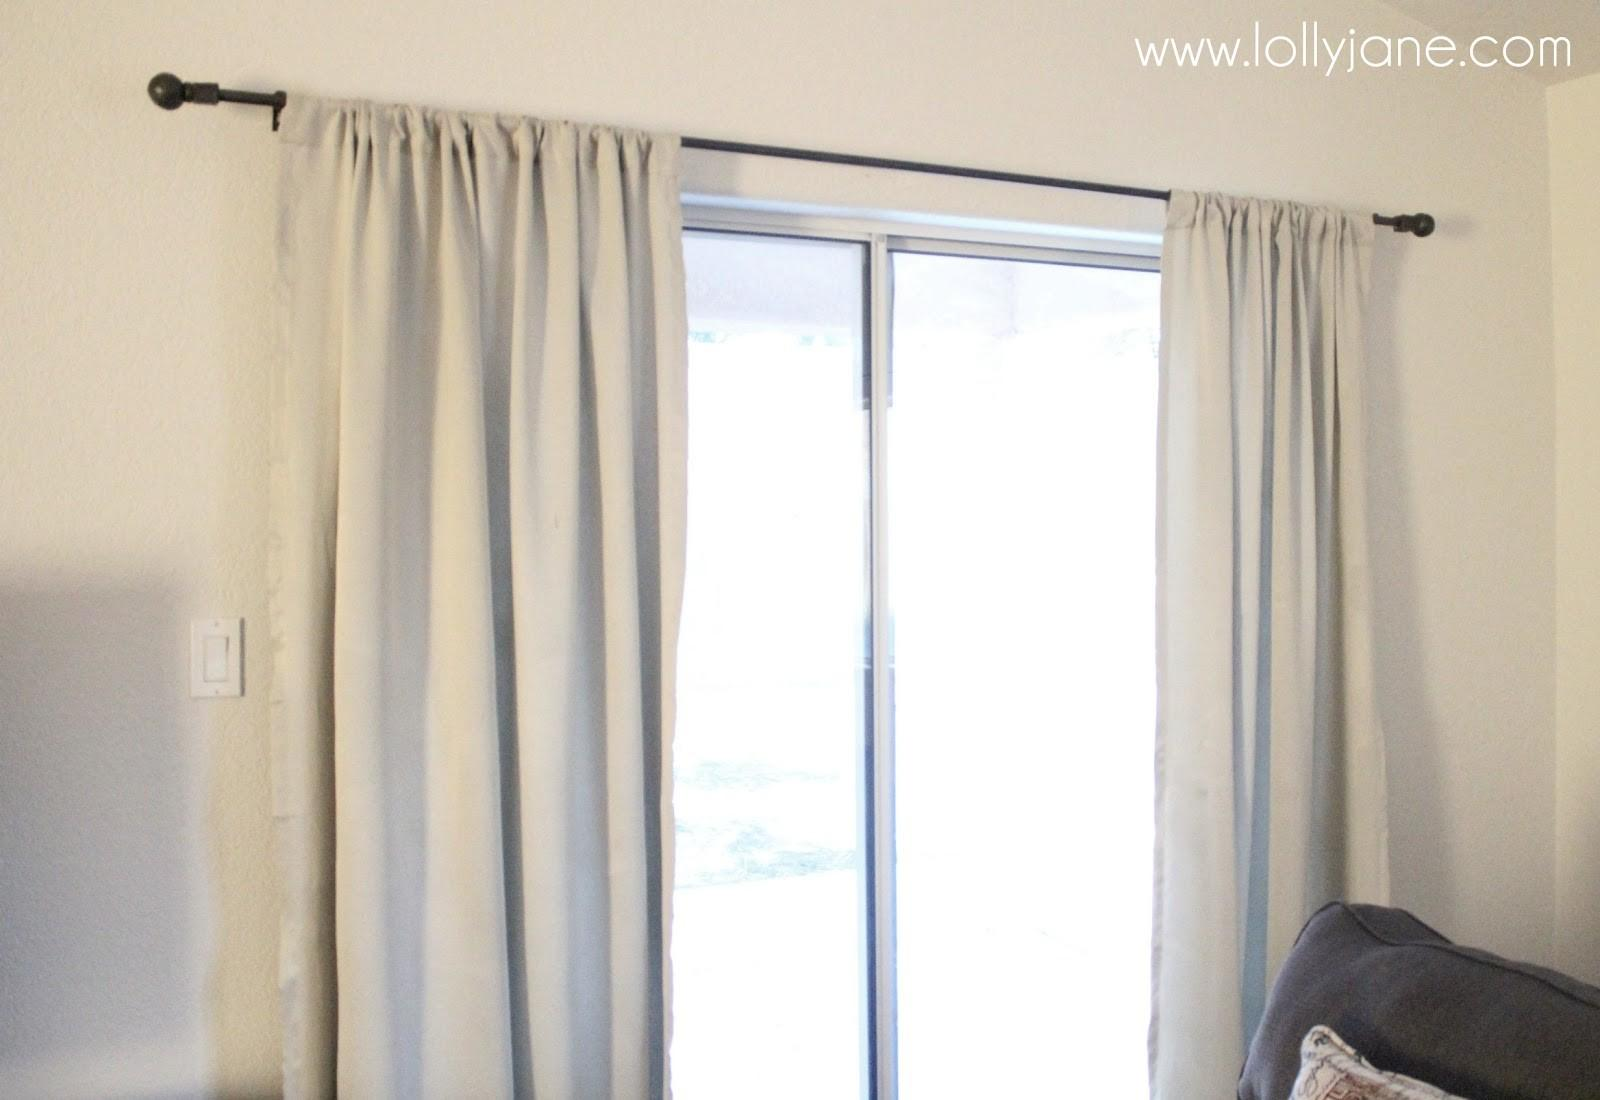 Lolly Jane Craft Tutorials Diy Home Decor Curtain